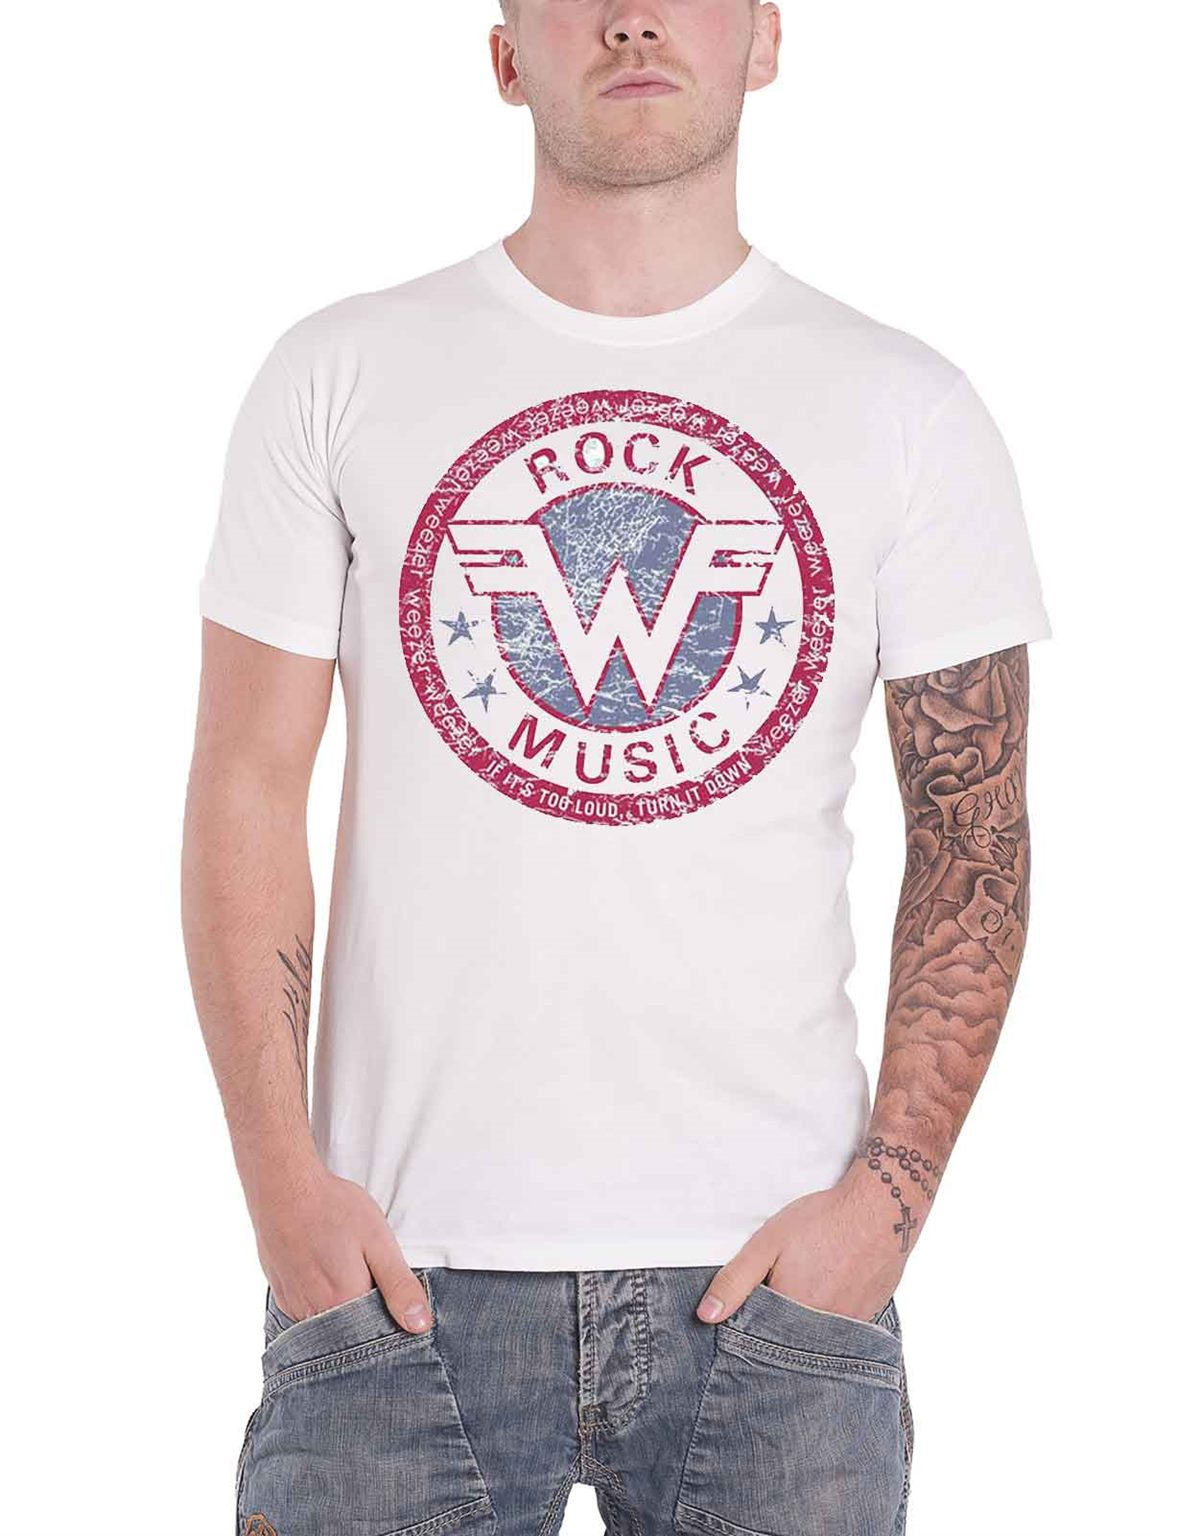 7061f933 T Shirt Rock Band Uk – EDGE Engineering and Consulting Limited